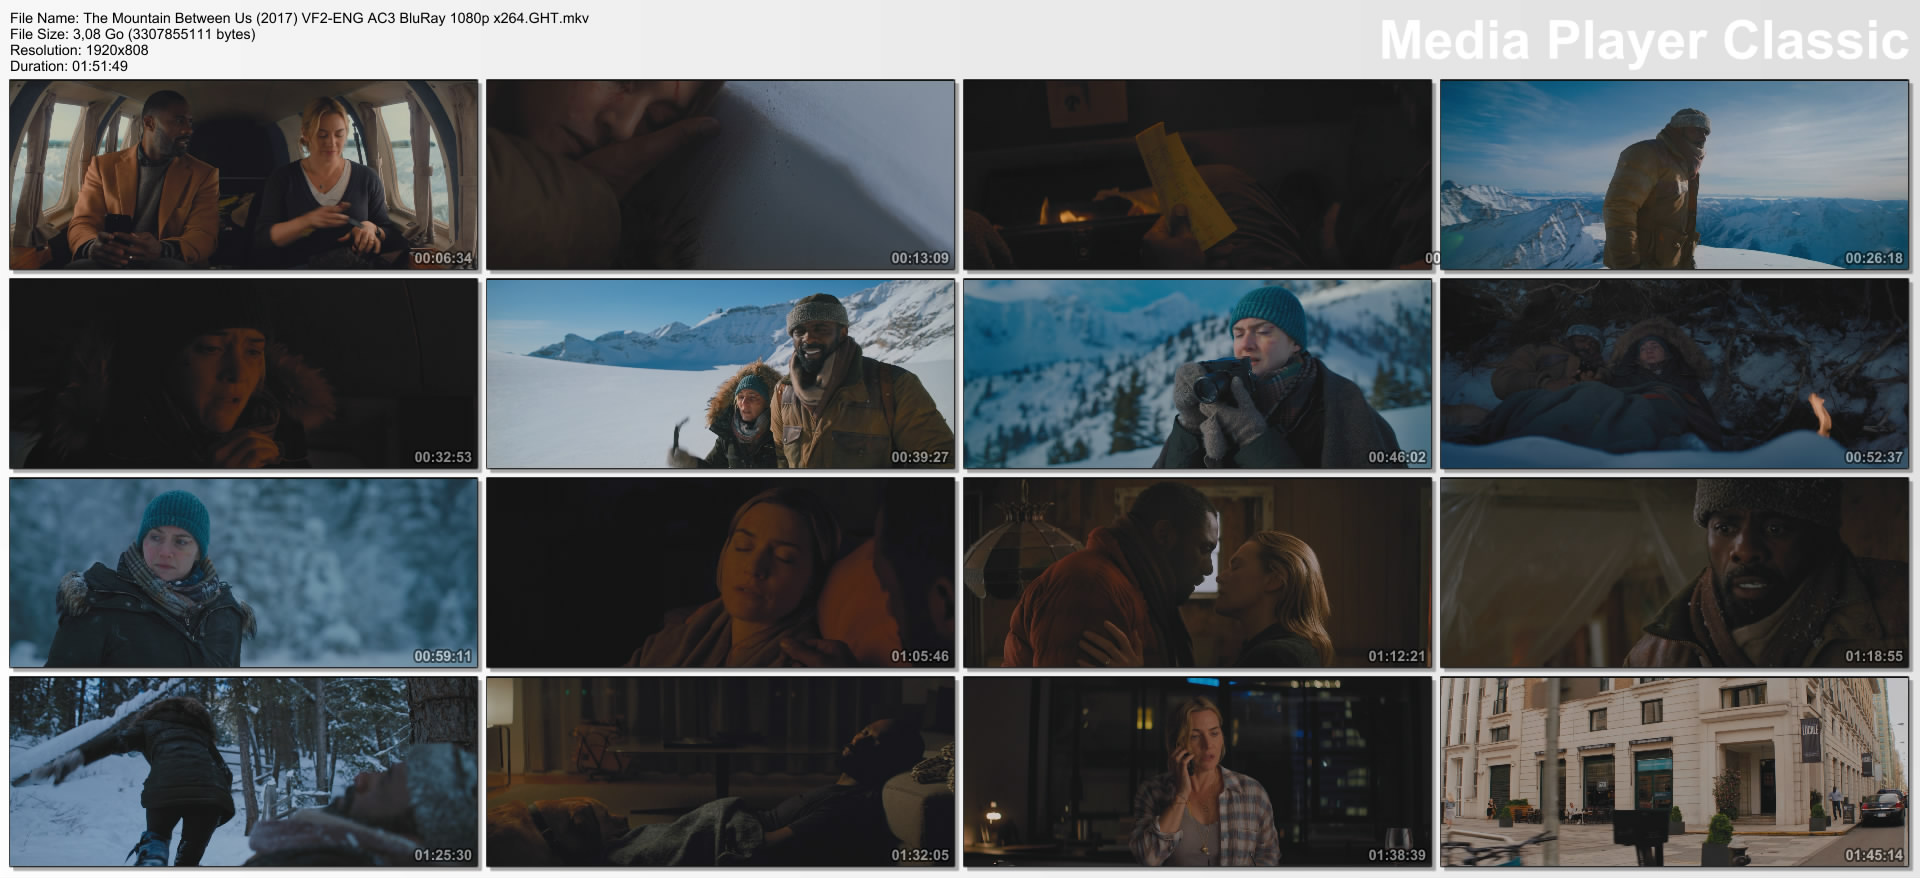 The Mountain Between Us (2017) VF2-ENG AC3 BluRay 1080p x264.GHT